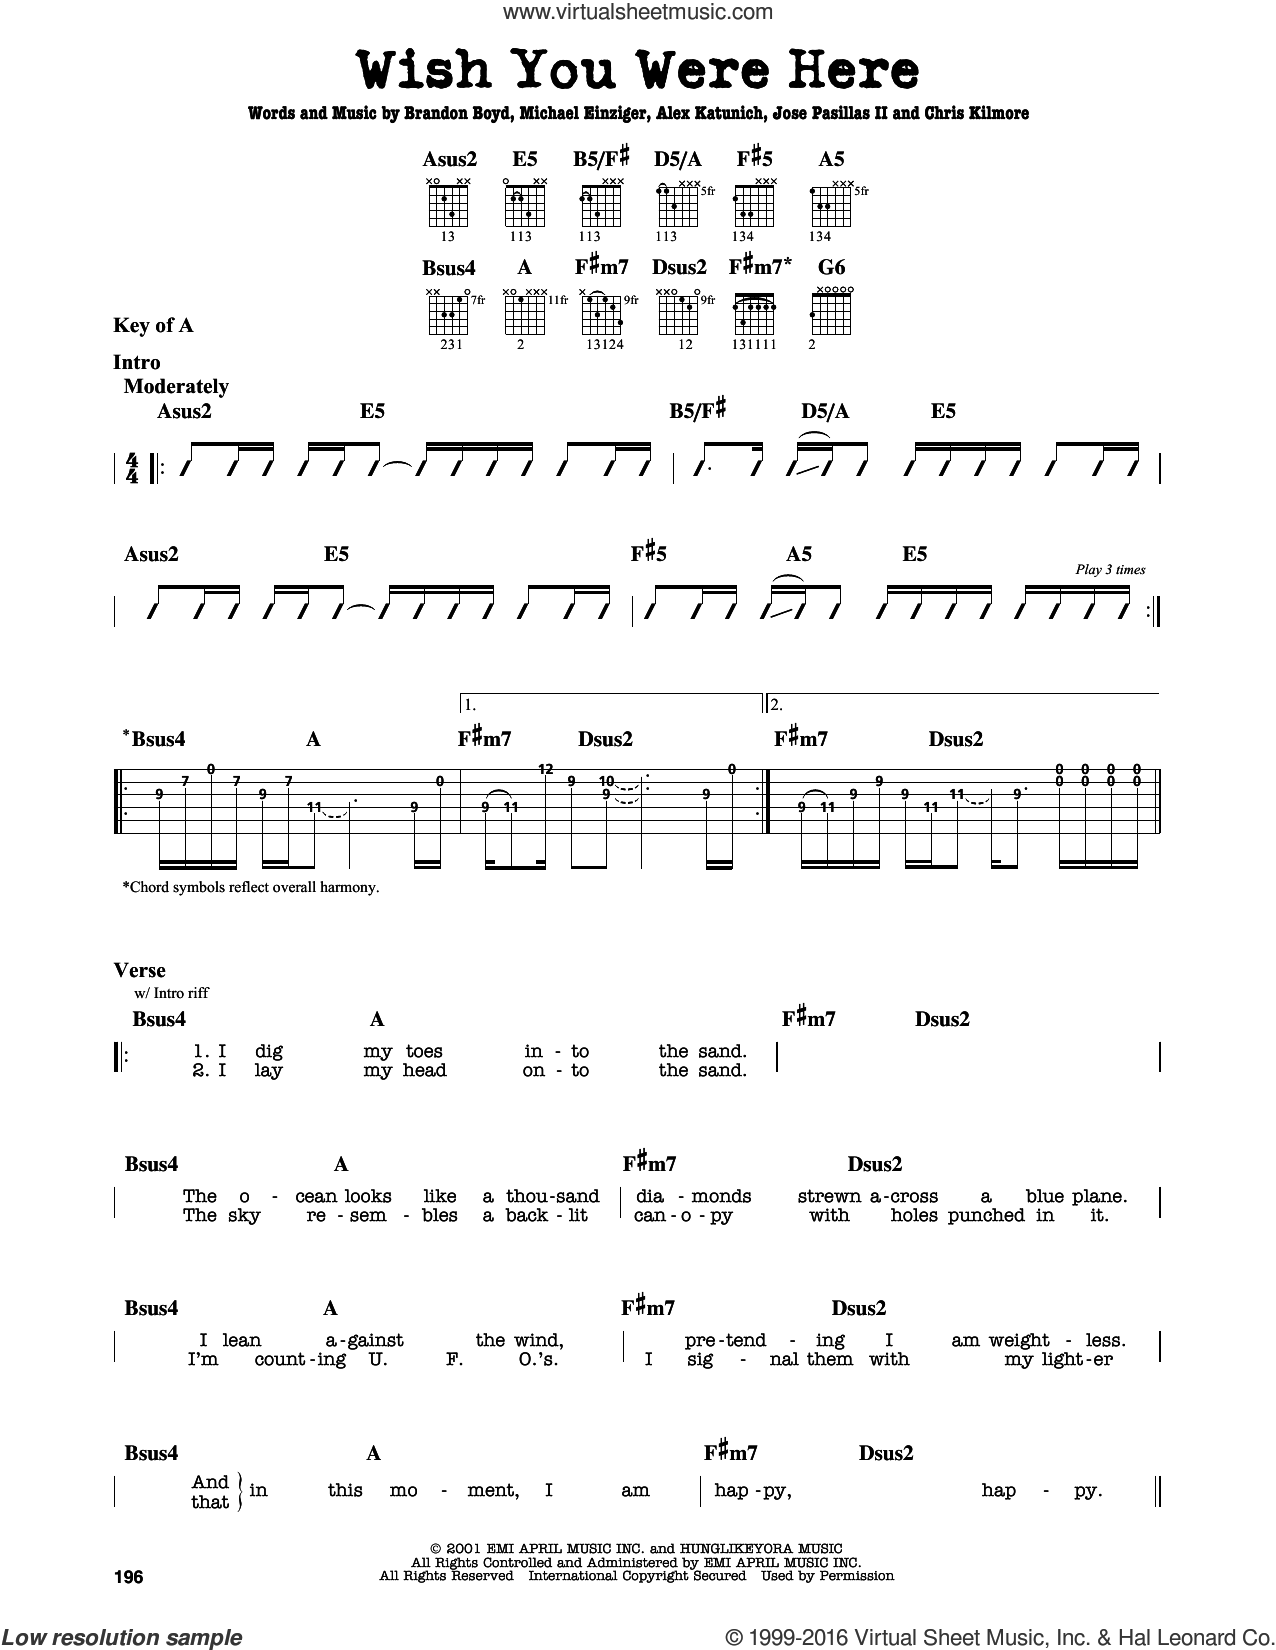 Wish You Were Here sheet music for guitar solo (lead sheet) by Incubus, Alex Katunich, Brandon Boyd, Chris Kilmore, Jose Pasillas II and Michael Einziger, intermediate guitar (lead sheet). Score Image Preview.